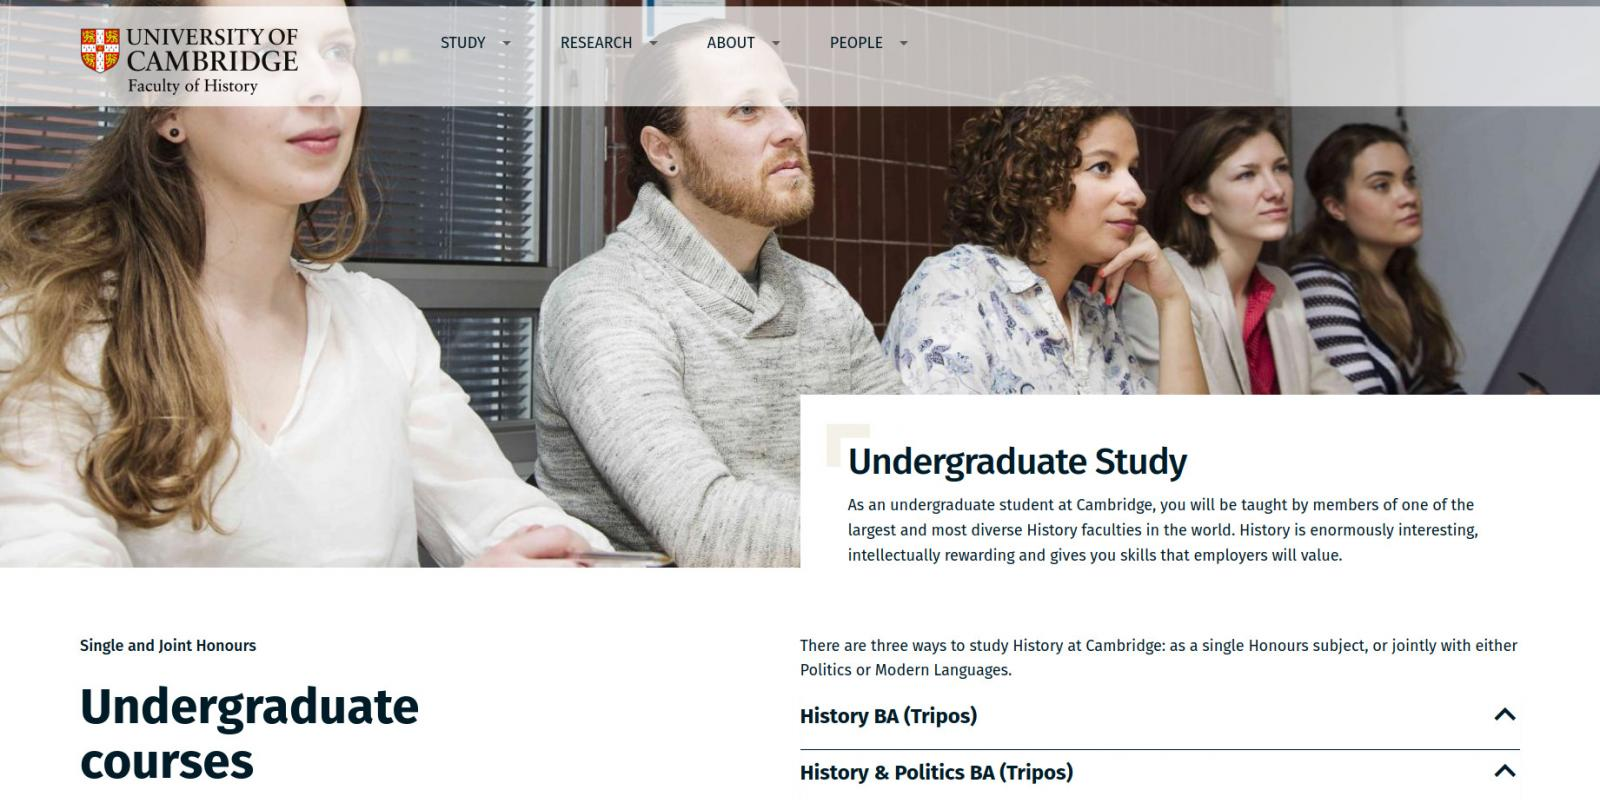 Faculty of History - University of Cambridge - website undergraduate study page